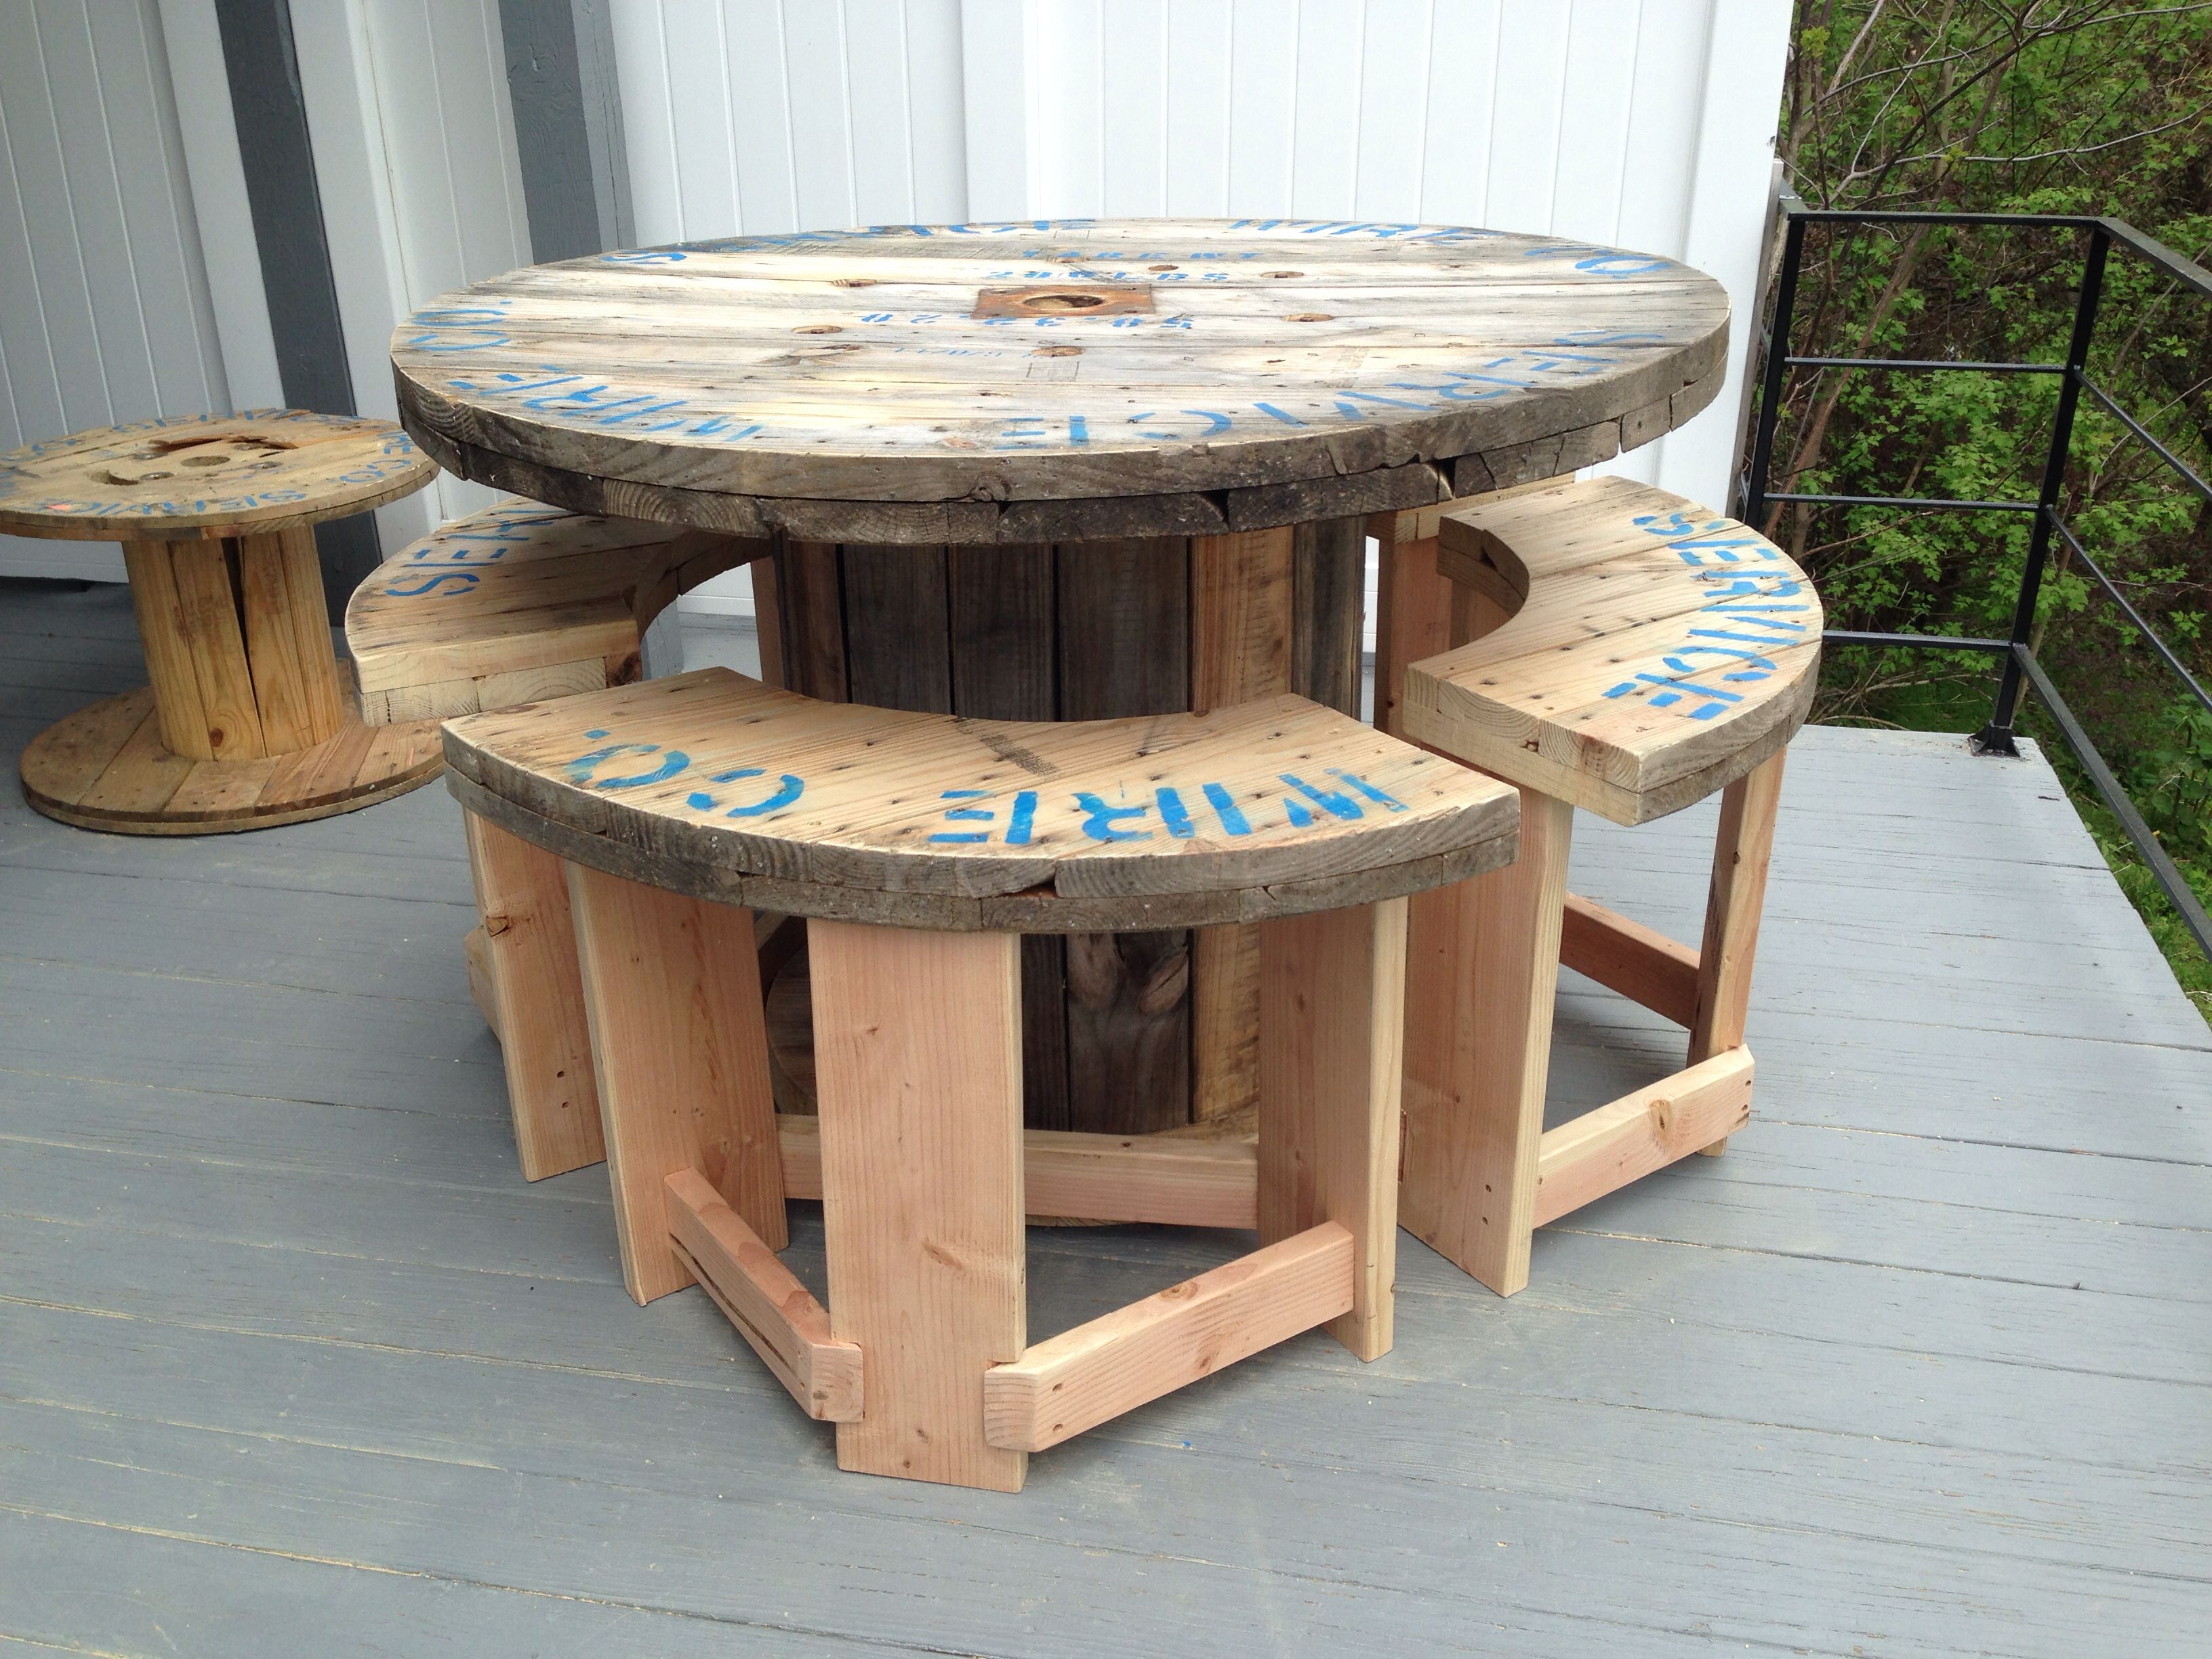 5u0027 Wire Spool I Made Into A Bar Height Patio Table With 4 Stools.